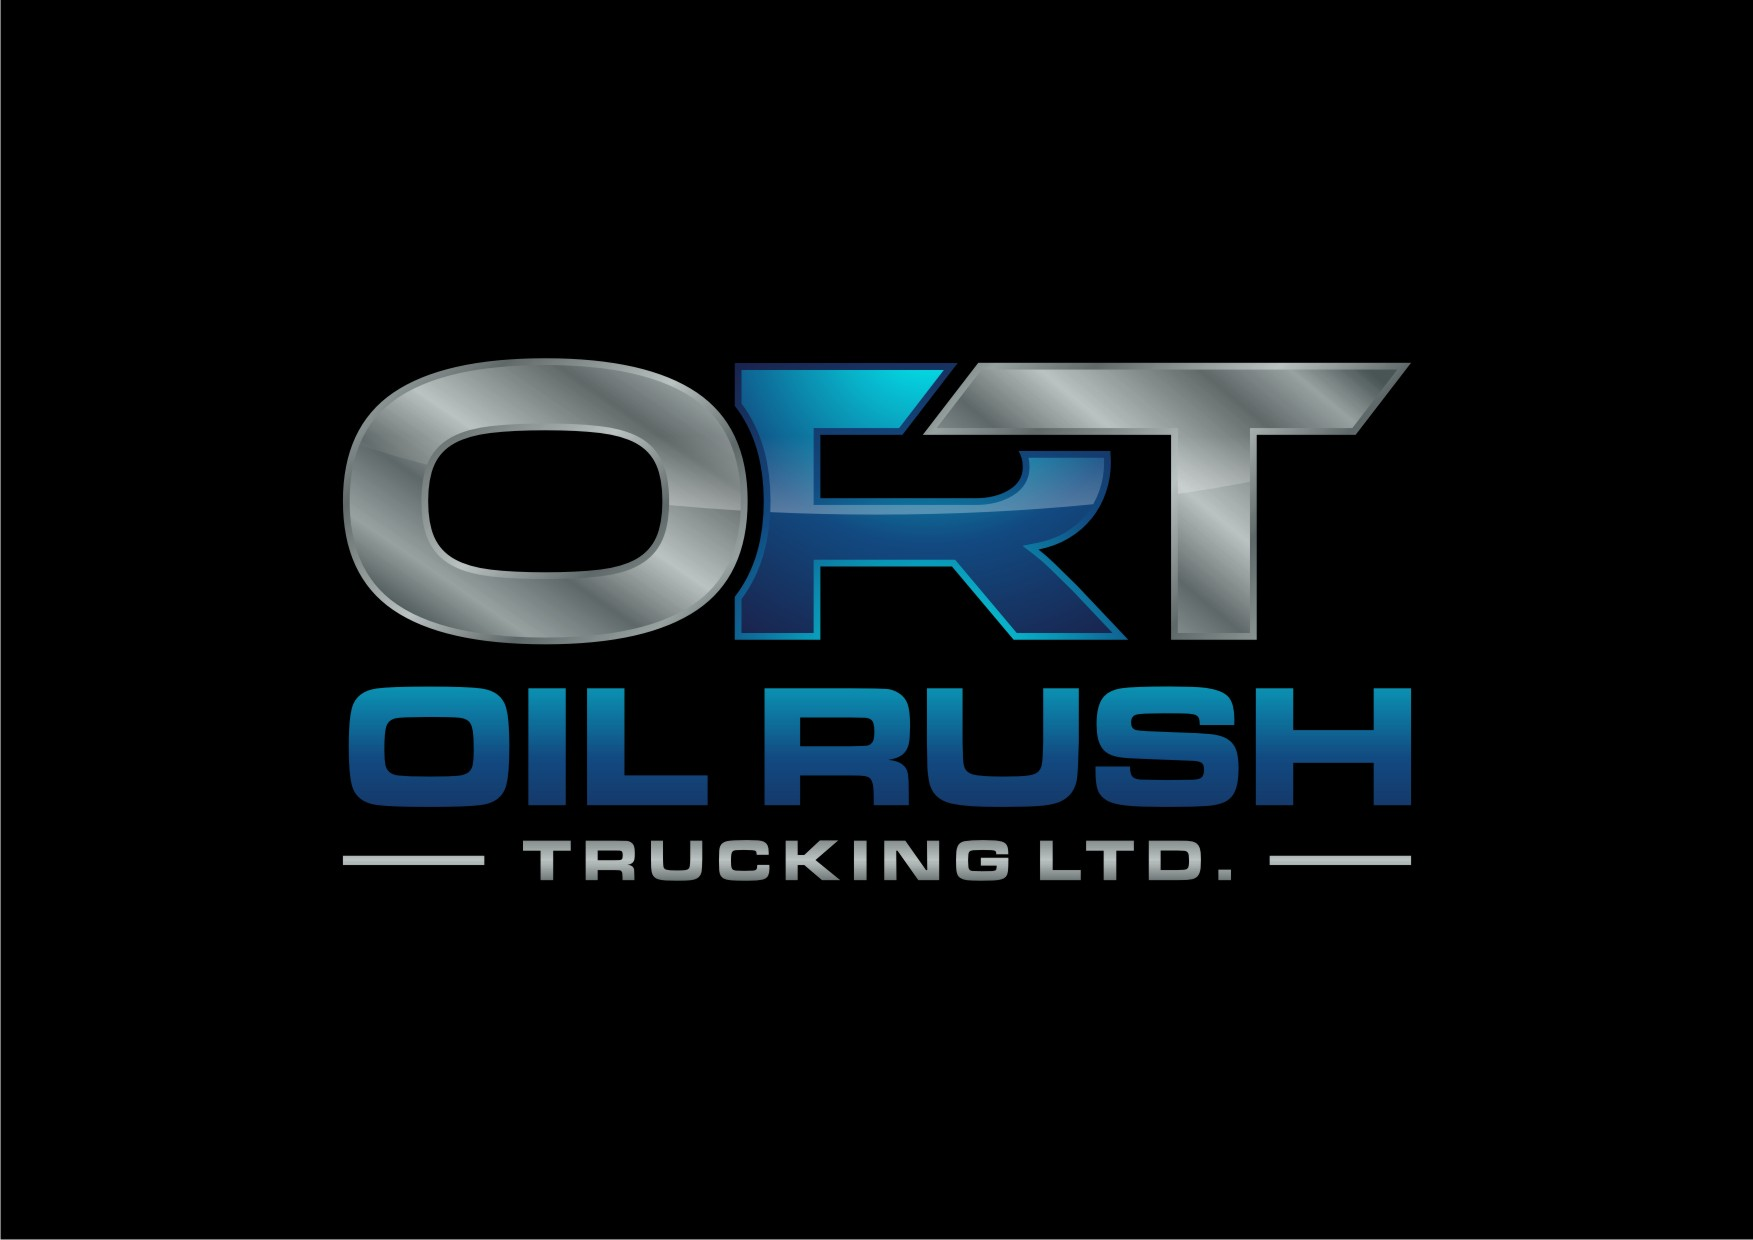 Oil Rush Trucking